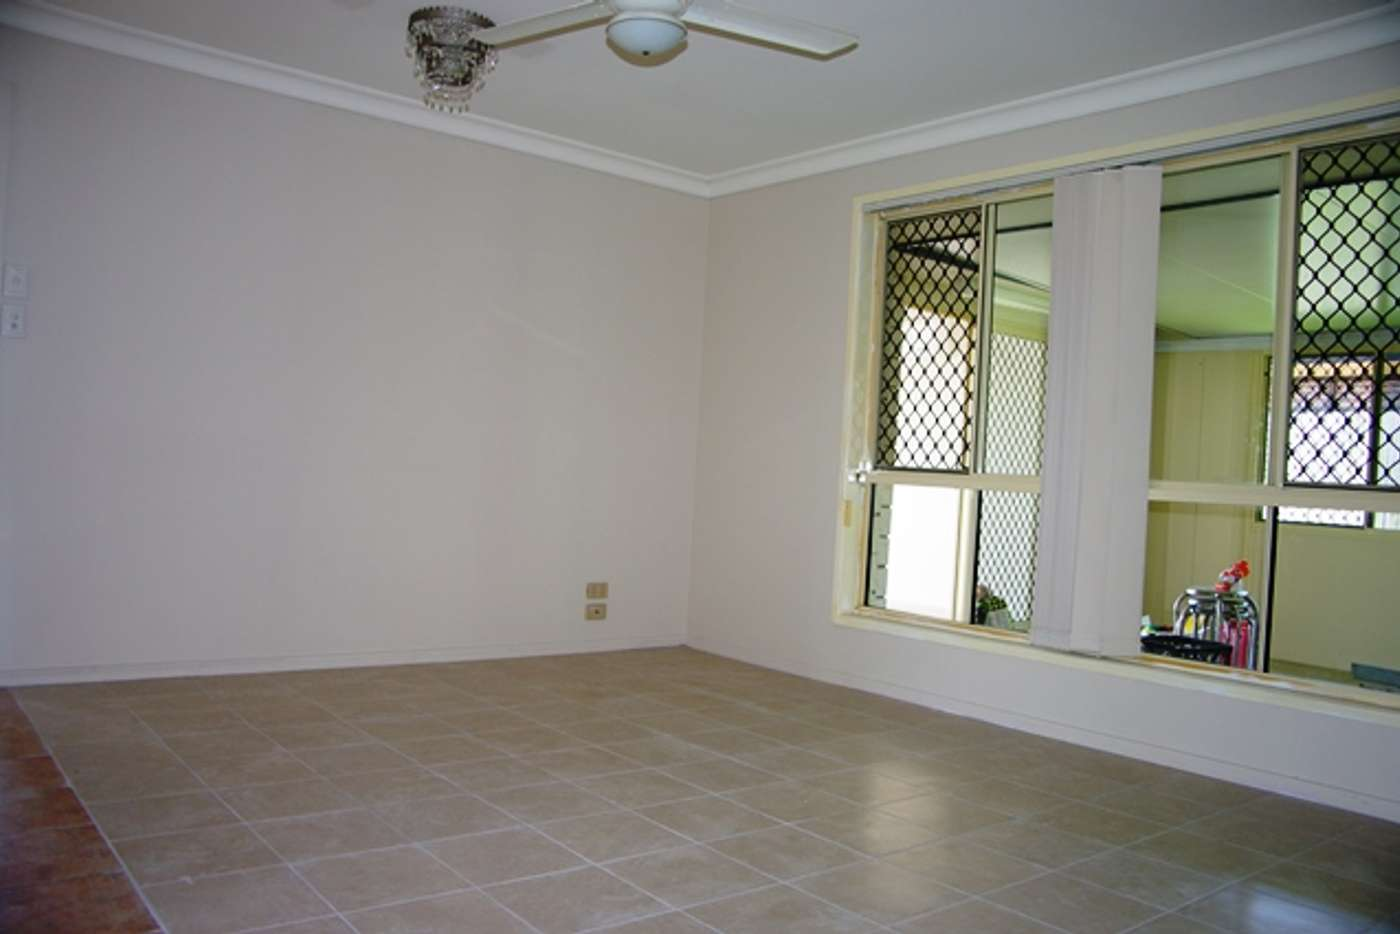 Seventh view of Homely house listing, 10 Sunningdale Street, Oxley QLD 4075